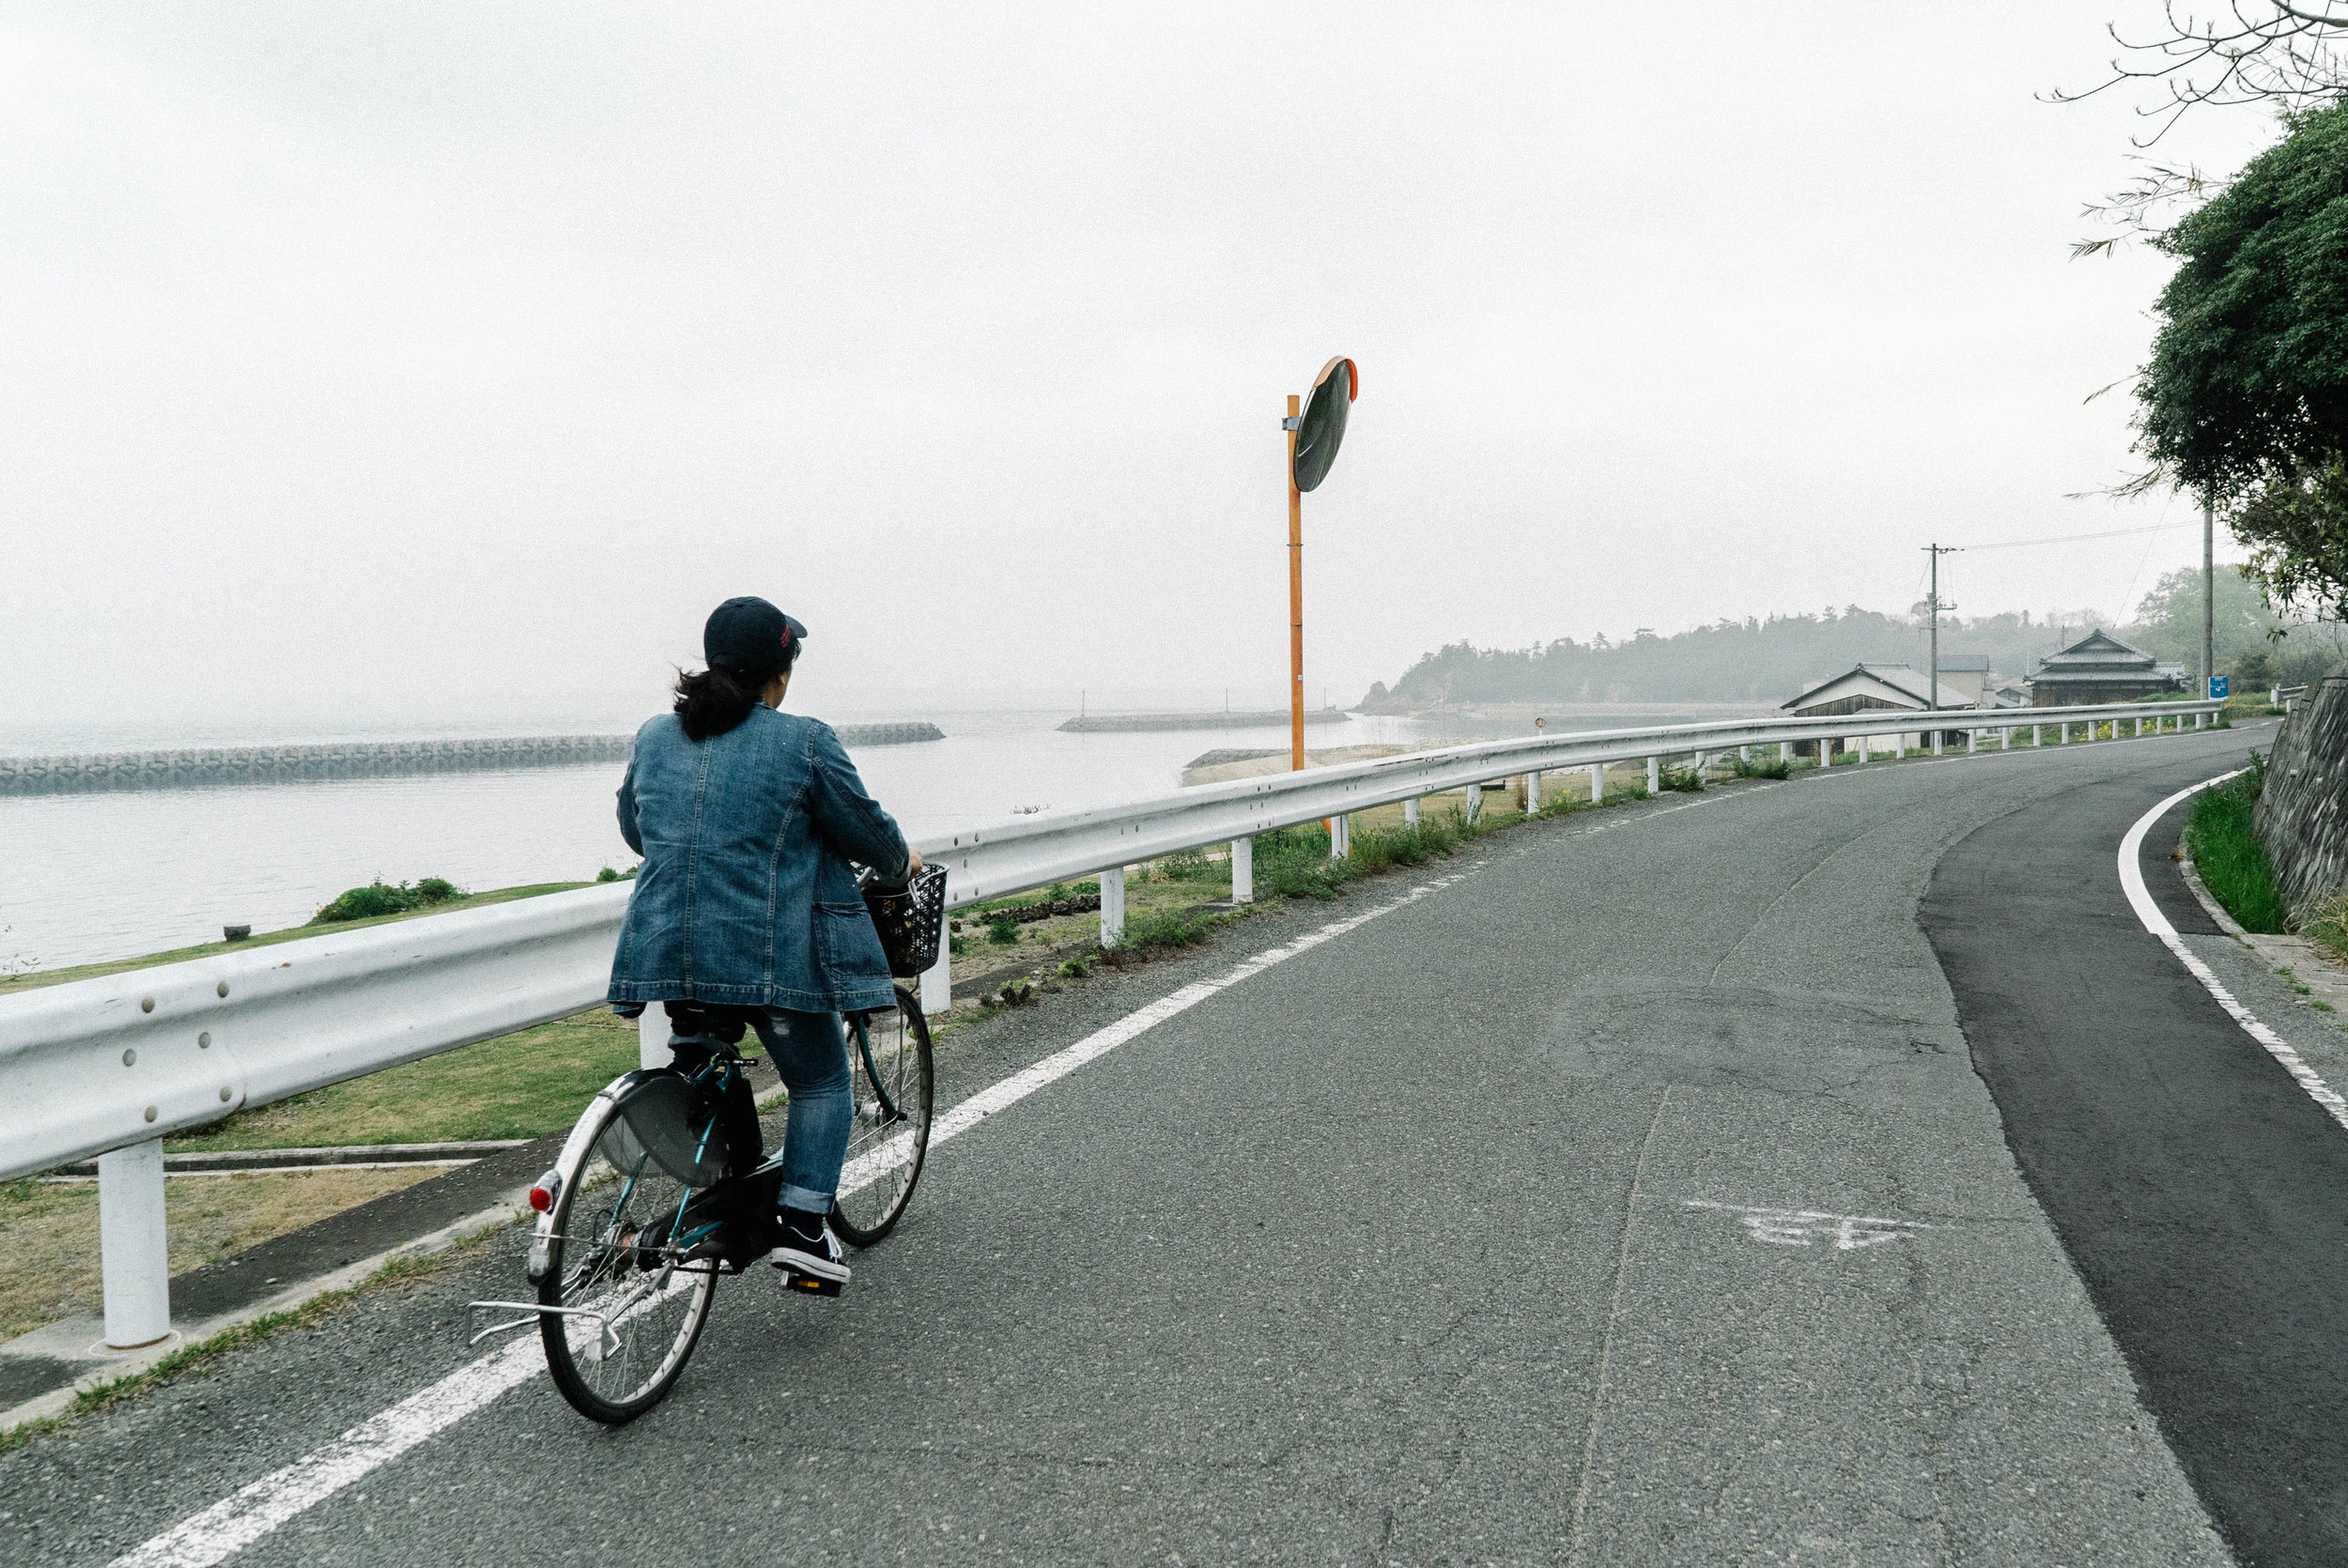 cycling through the local streets of Teshima